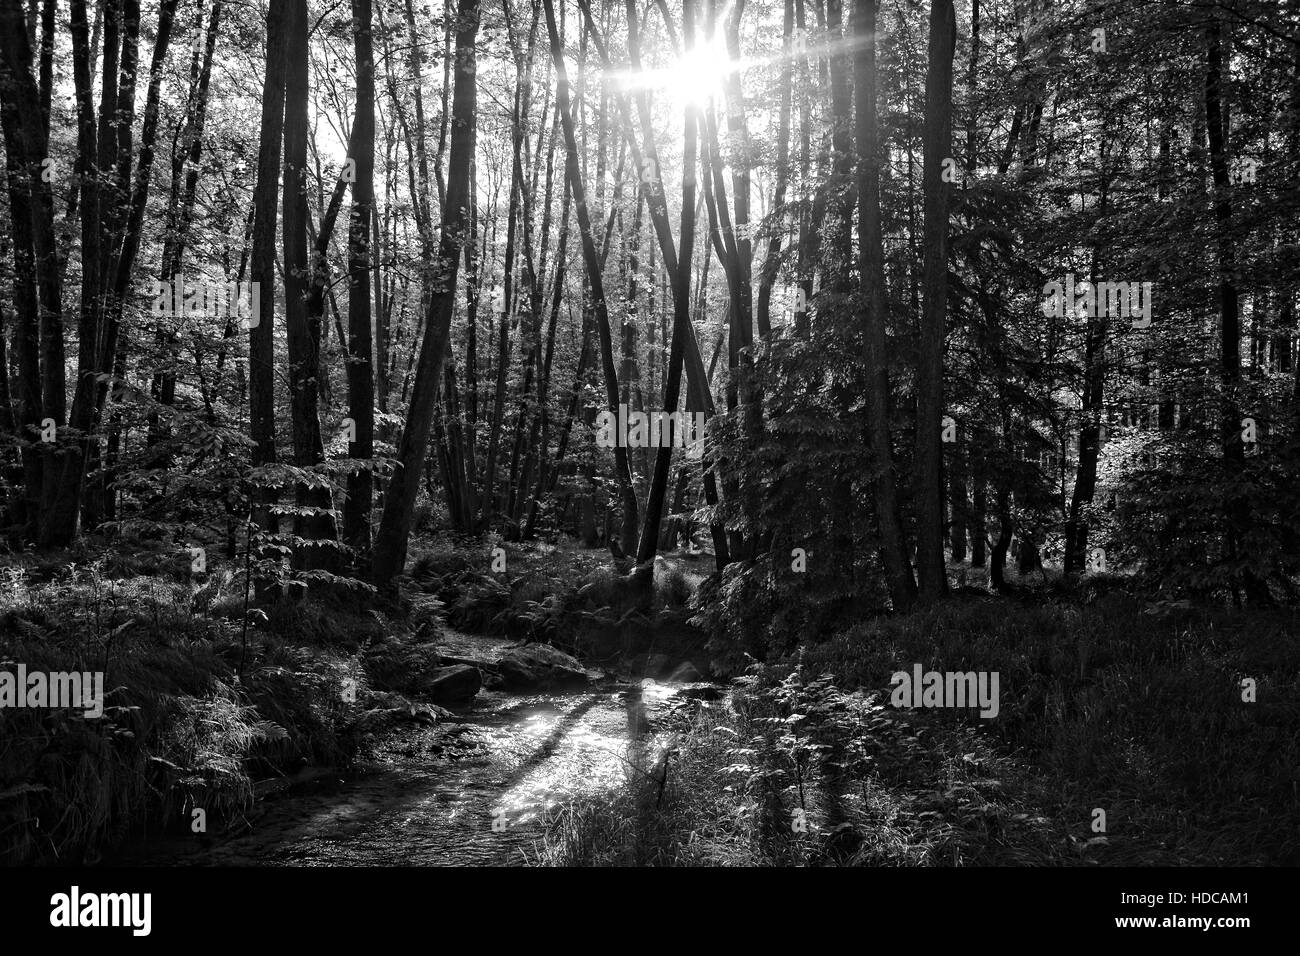 Small brook in the forest in the early morning with sun, in black and white - Stock Image